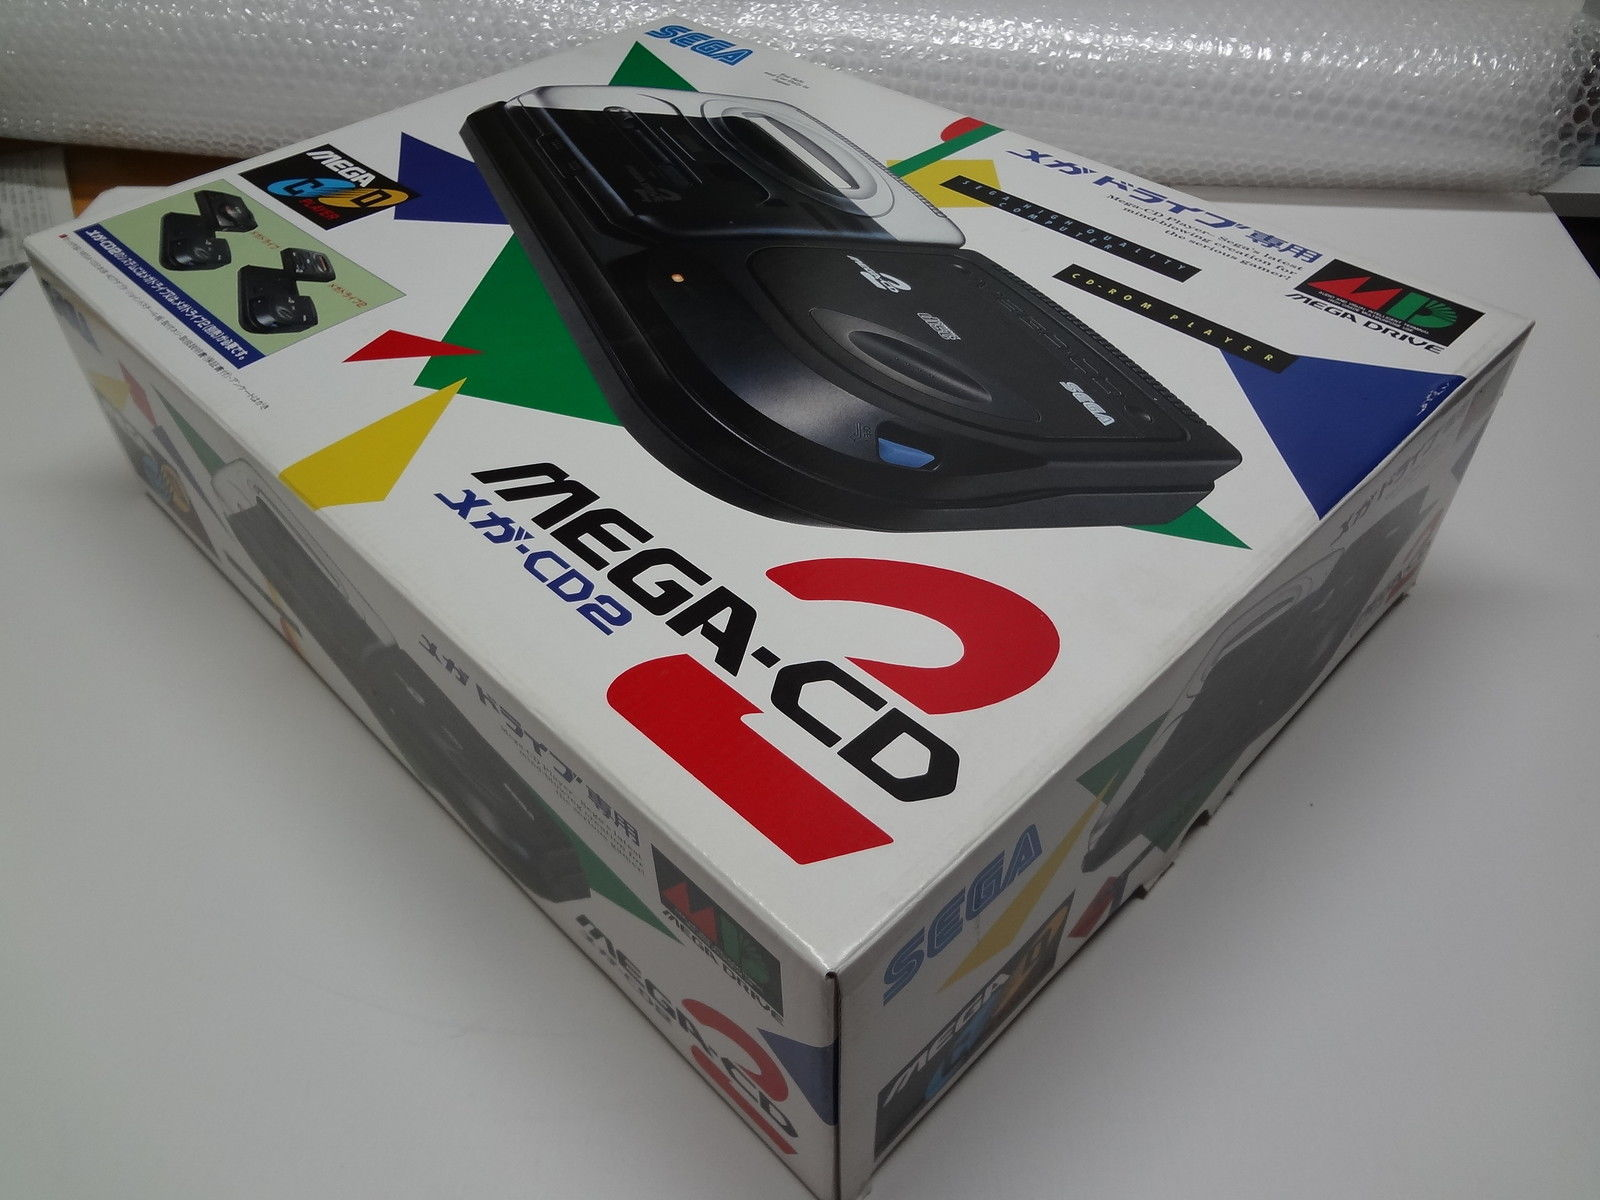 Mega-CD 2 System Sega Japan NEW